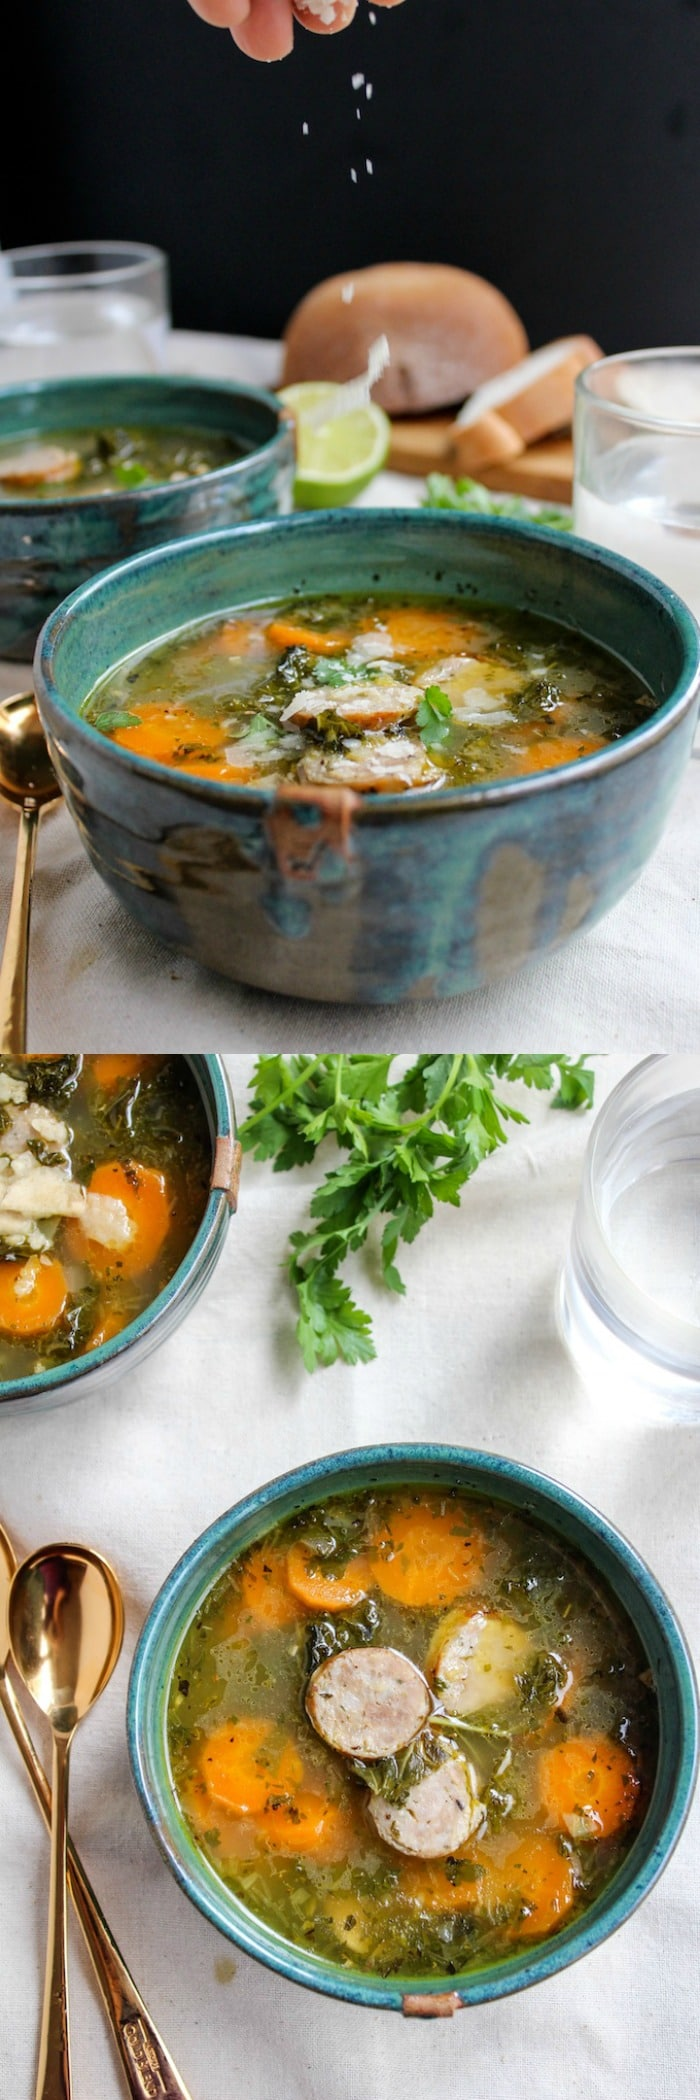 Sausage and Kale Soup www.asaucykitchen.com